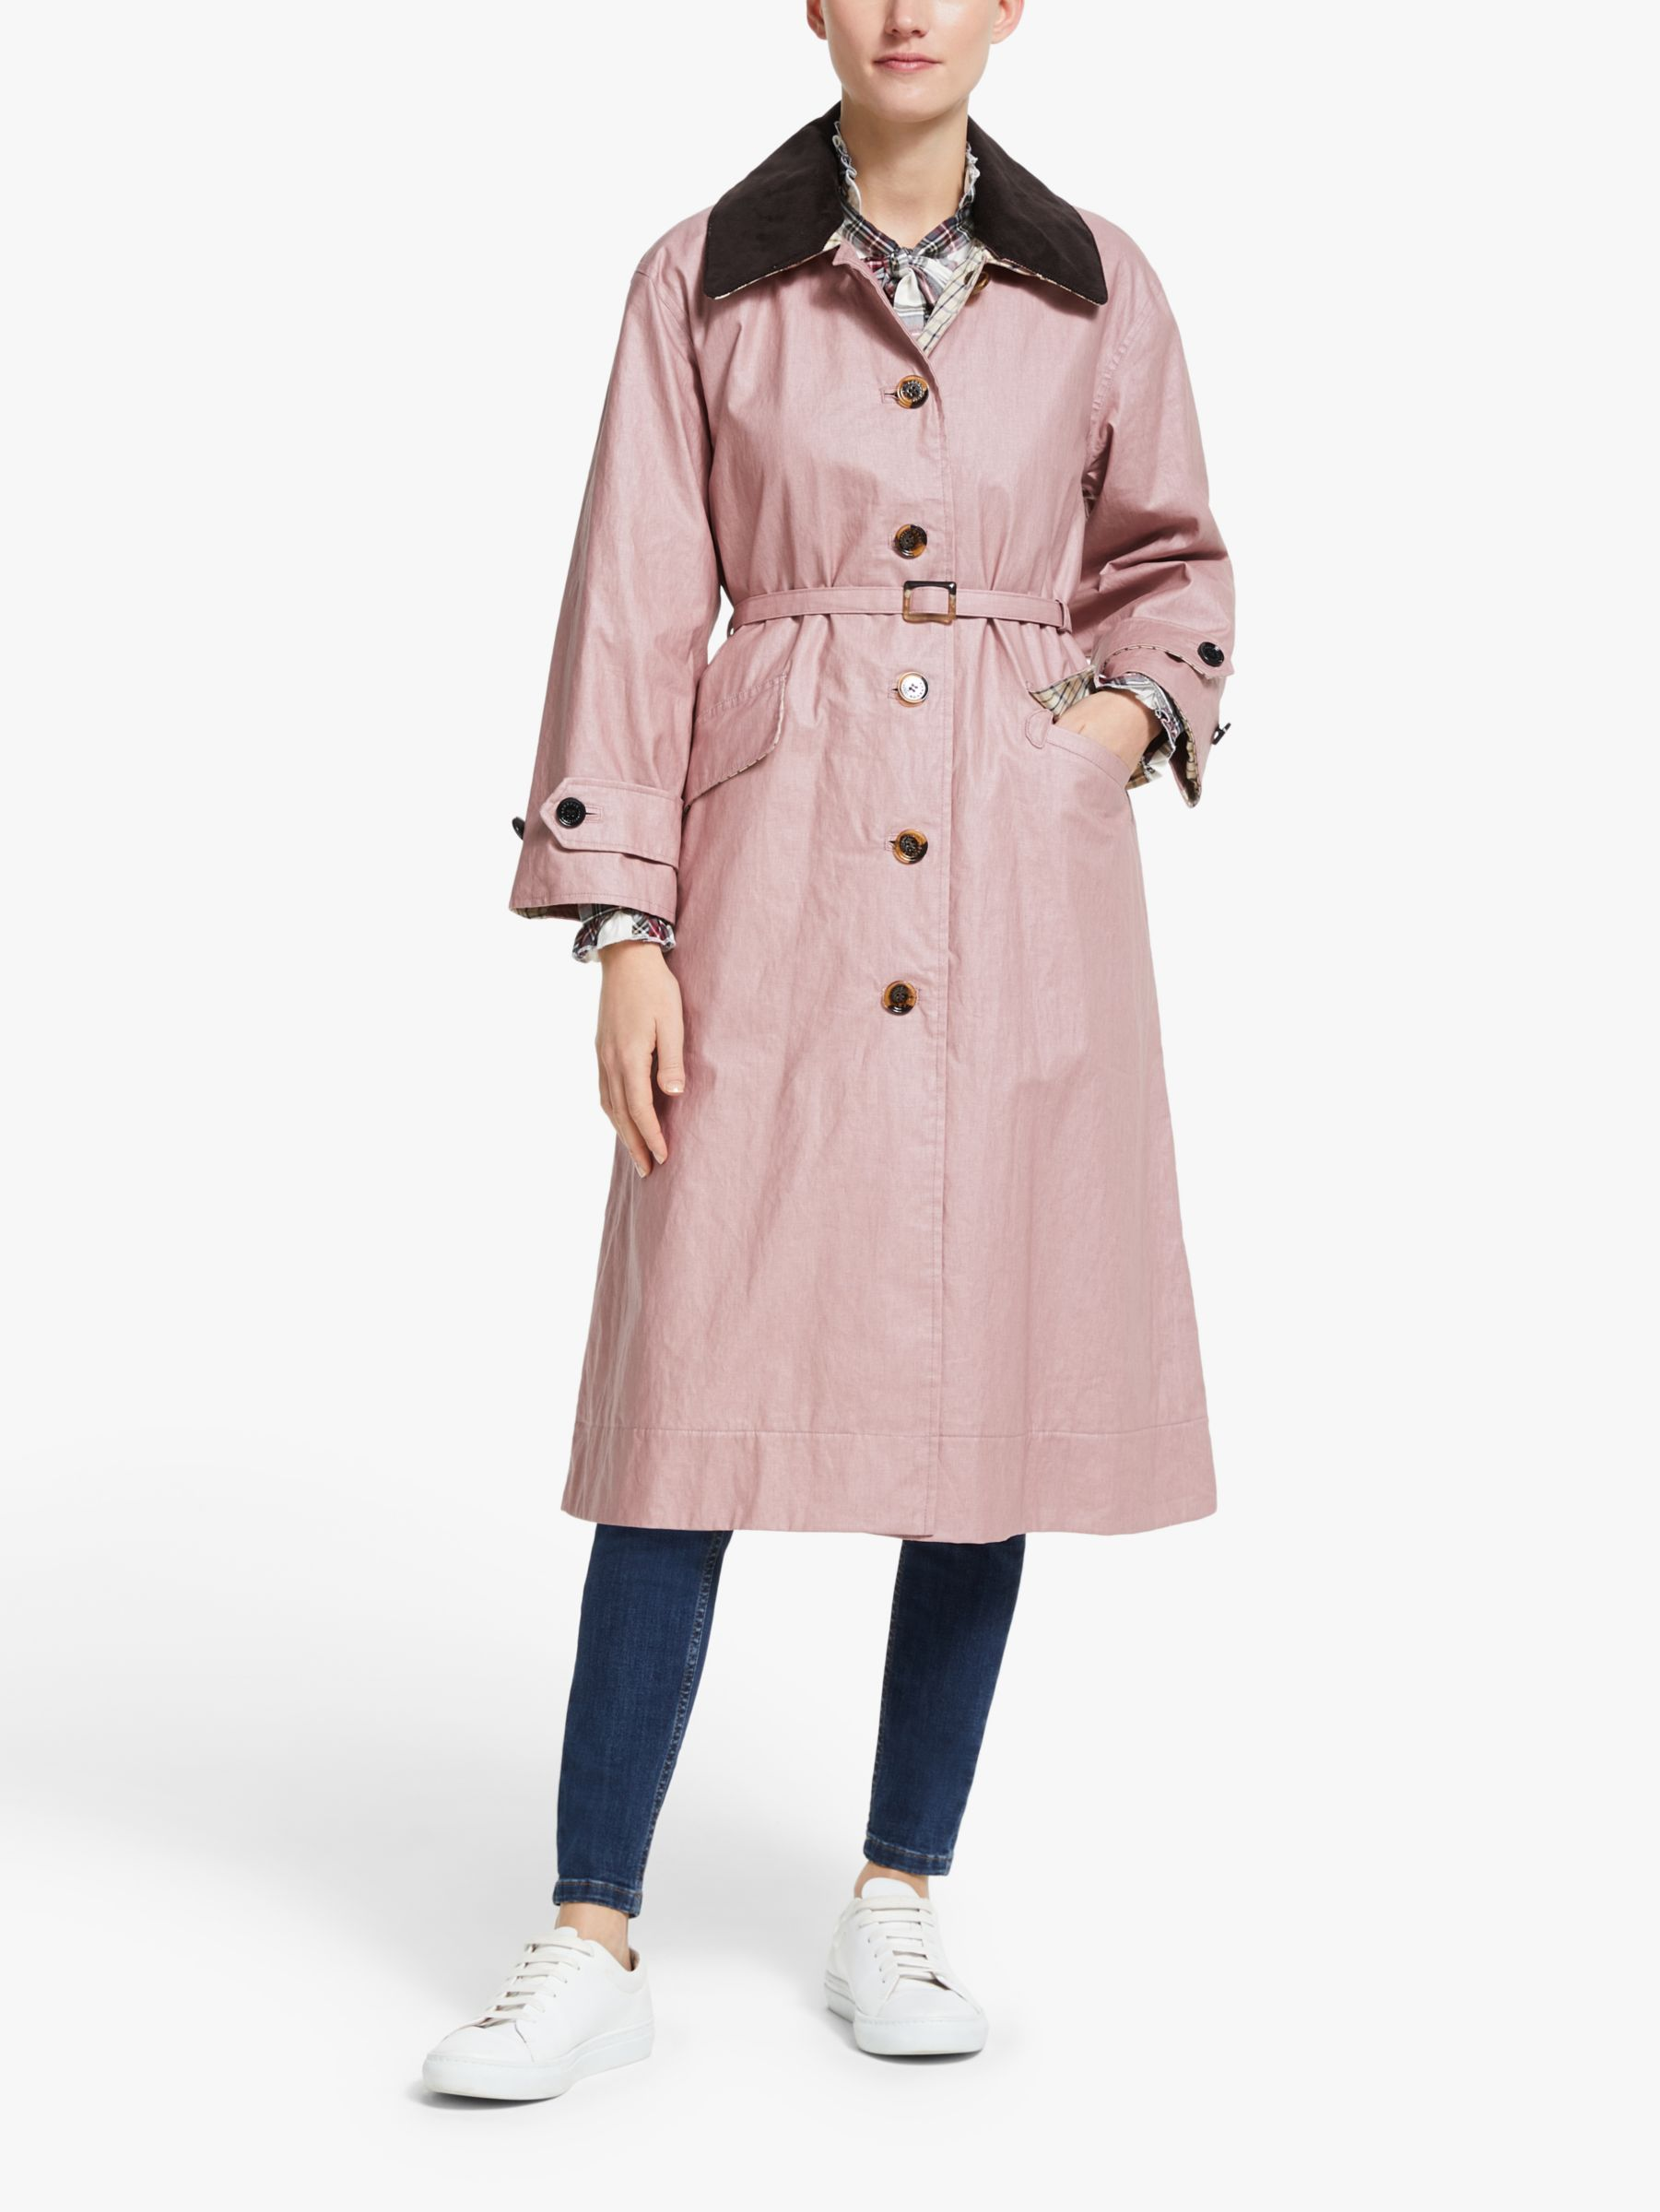 Barbour Barbour by ALEXACHUNG Mildred Casual Long Jacket